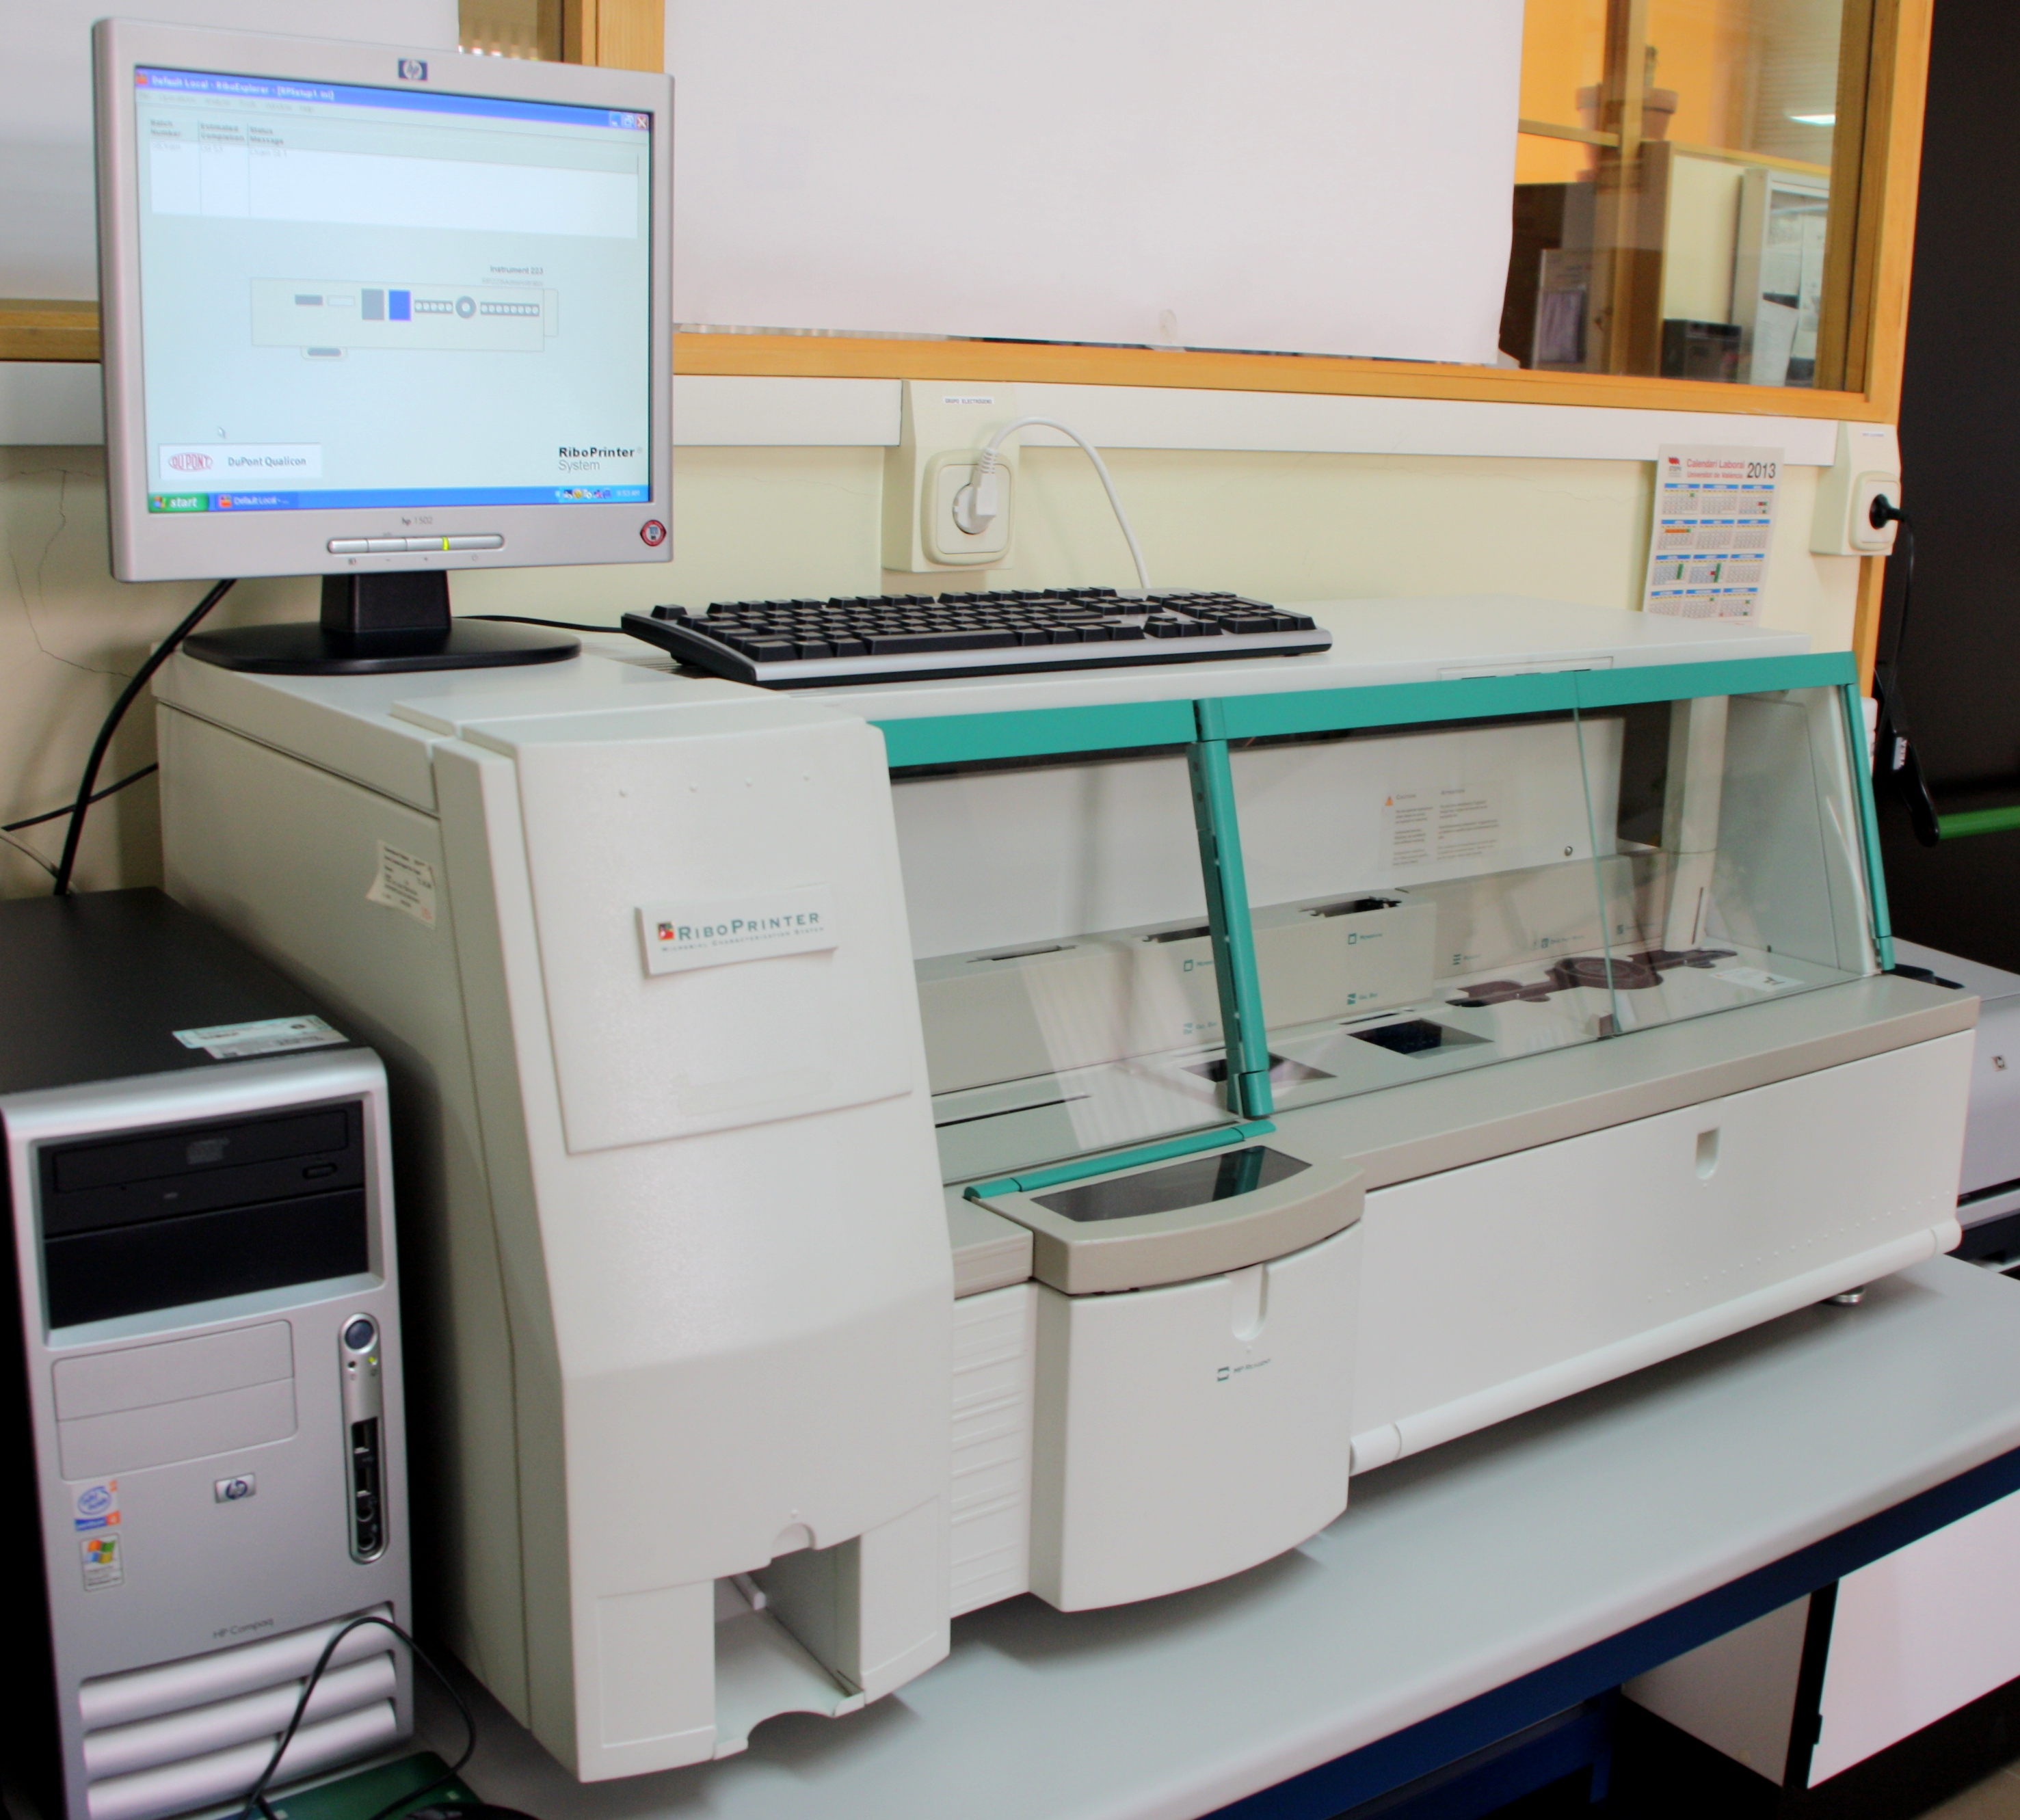 Riboprinter microbial characterisation system.